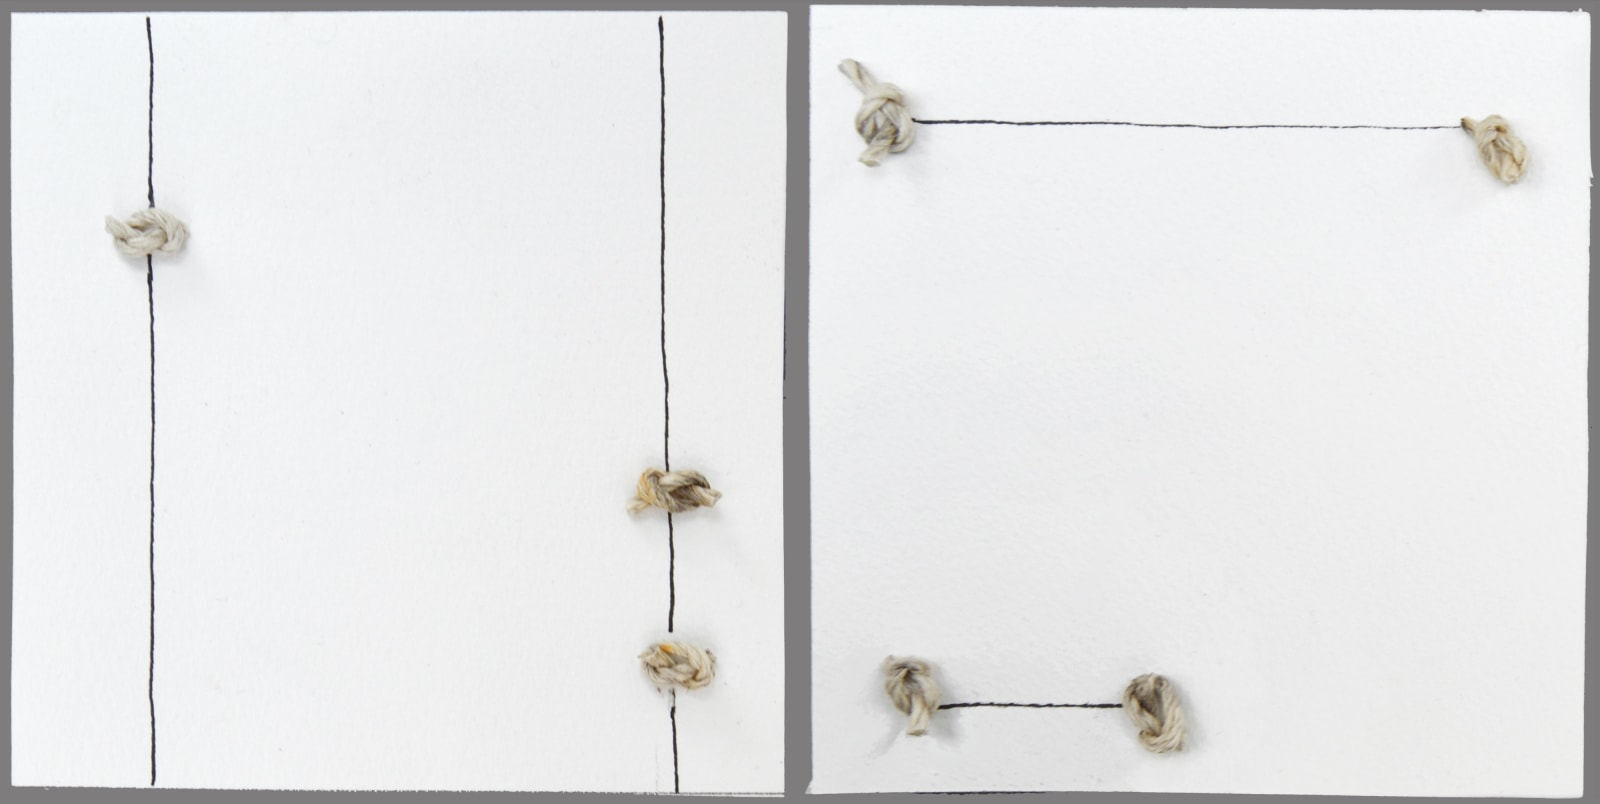 Toni Ross Untitled, 2019 Mixed media on paper 4 x 8 1/4 in. (TR 214) $2,800